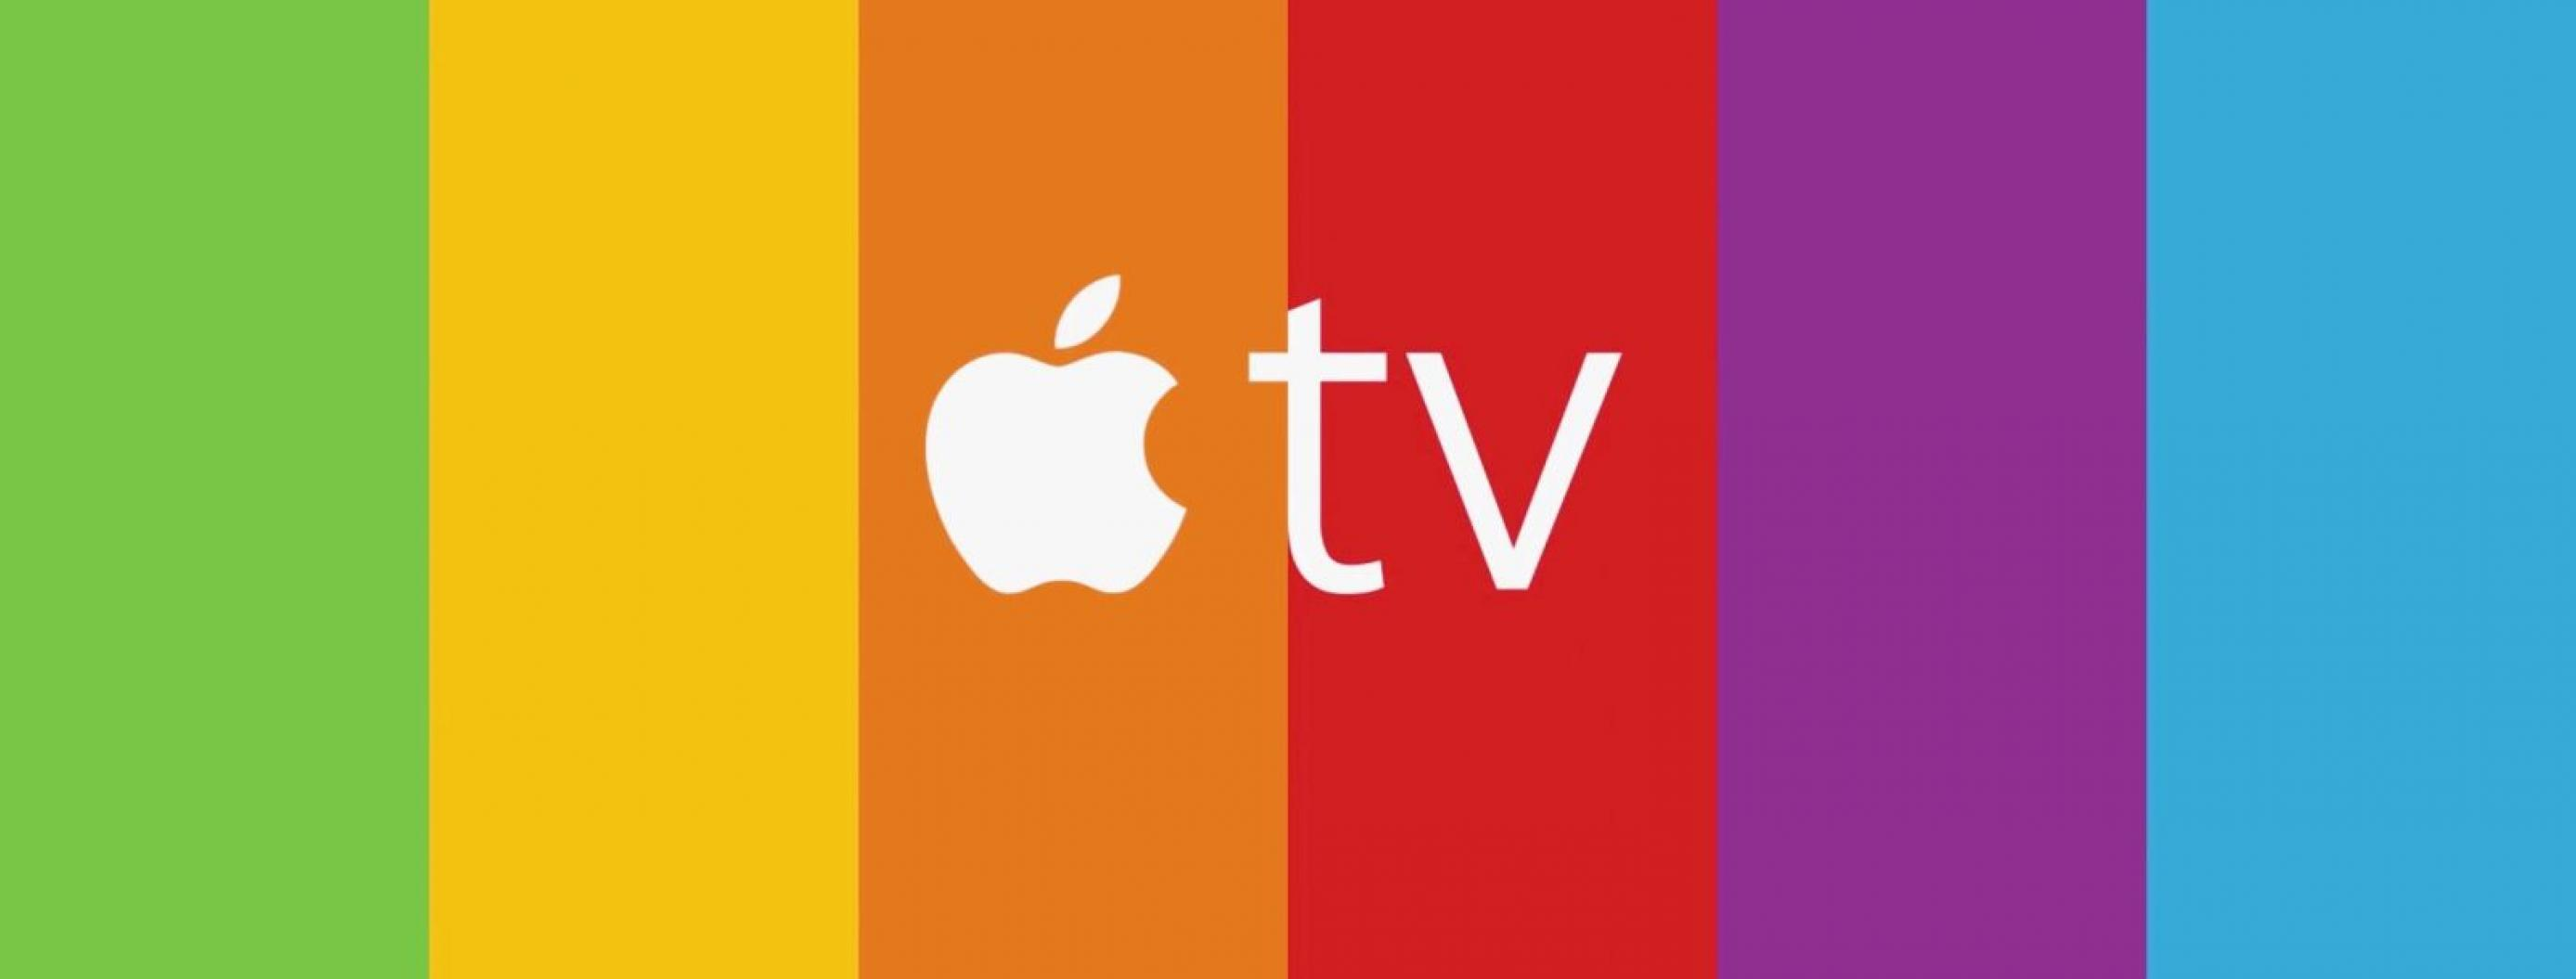 Apple's Streaming Service Will Come with Original Content